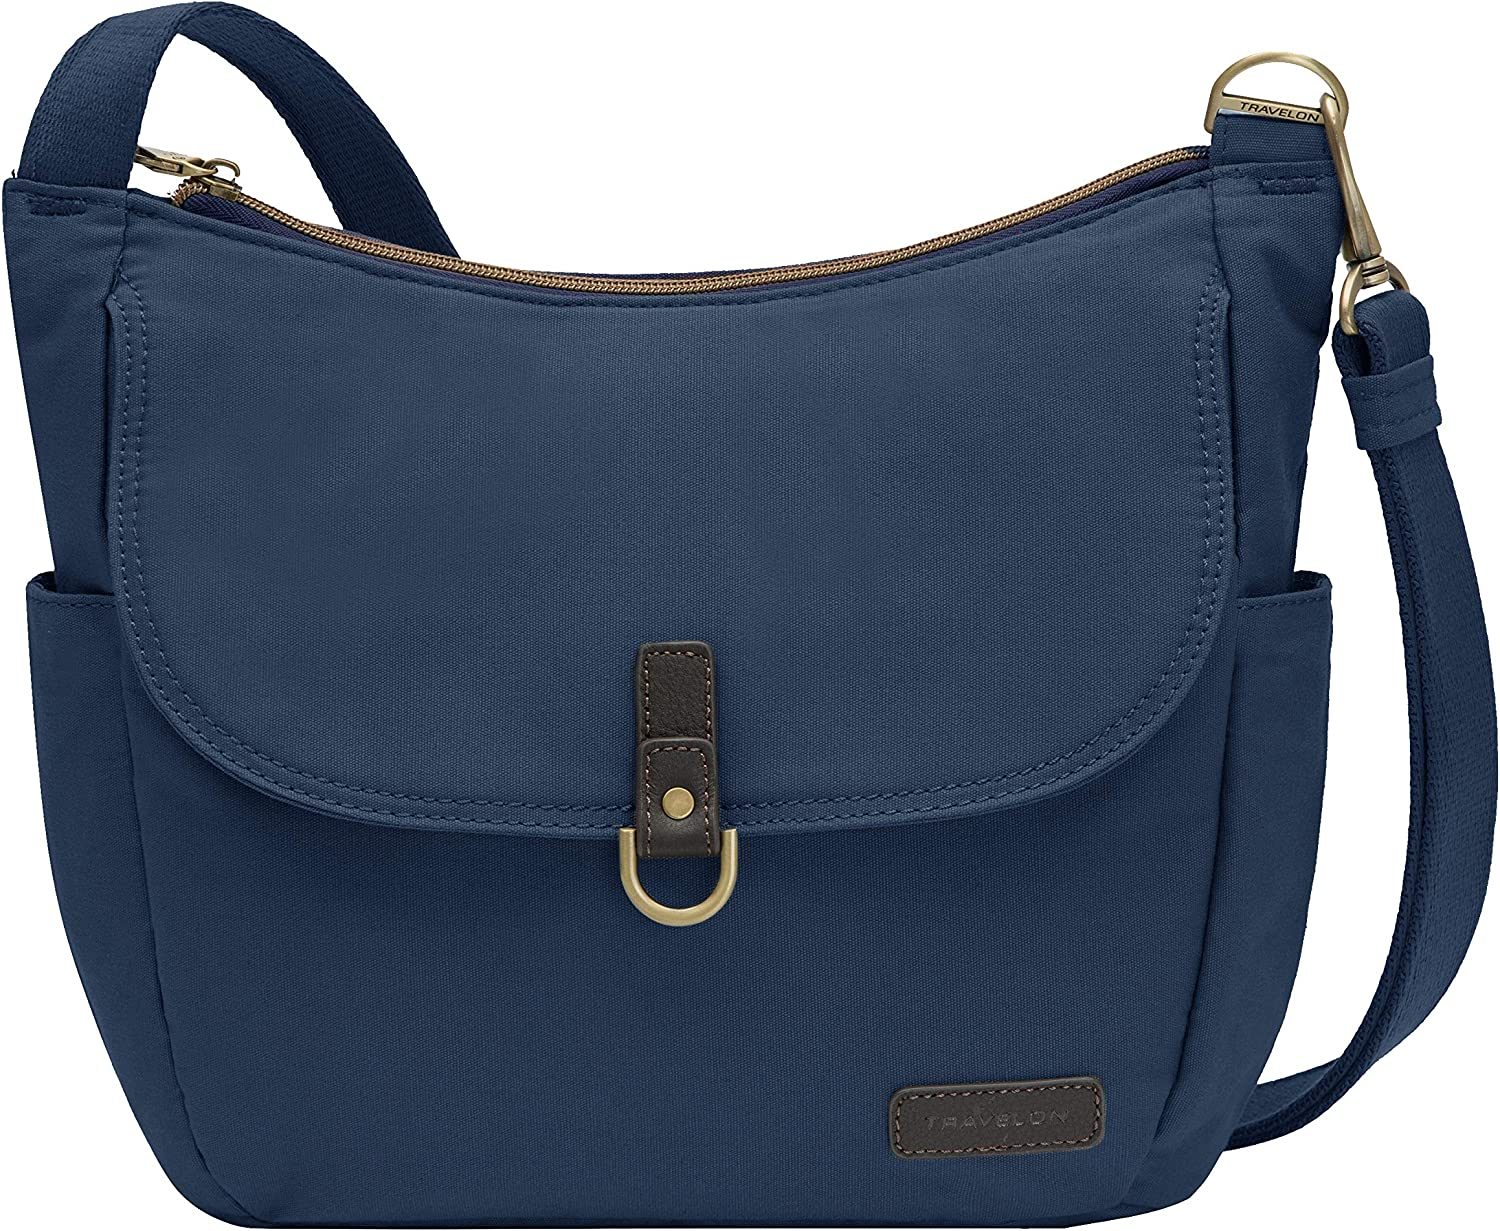 Travelon Anti-Theft Courier Bucket Hobo, Navy, One Size